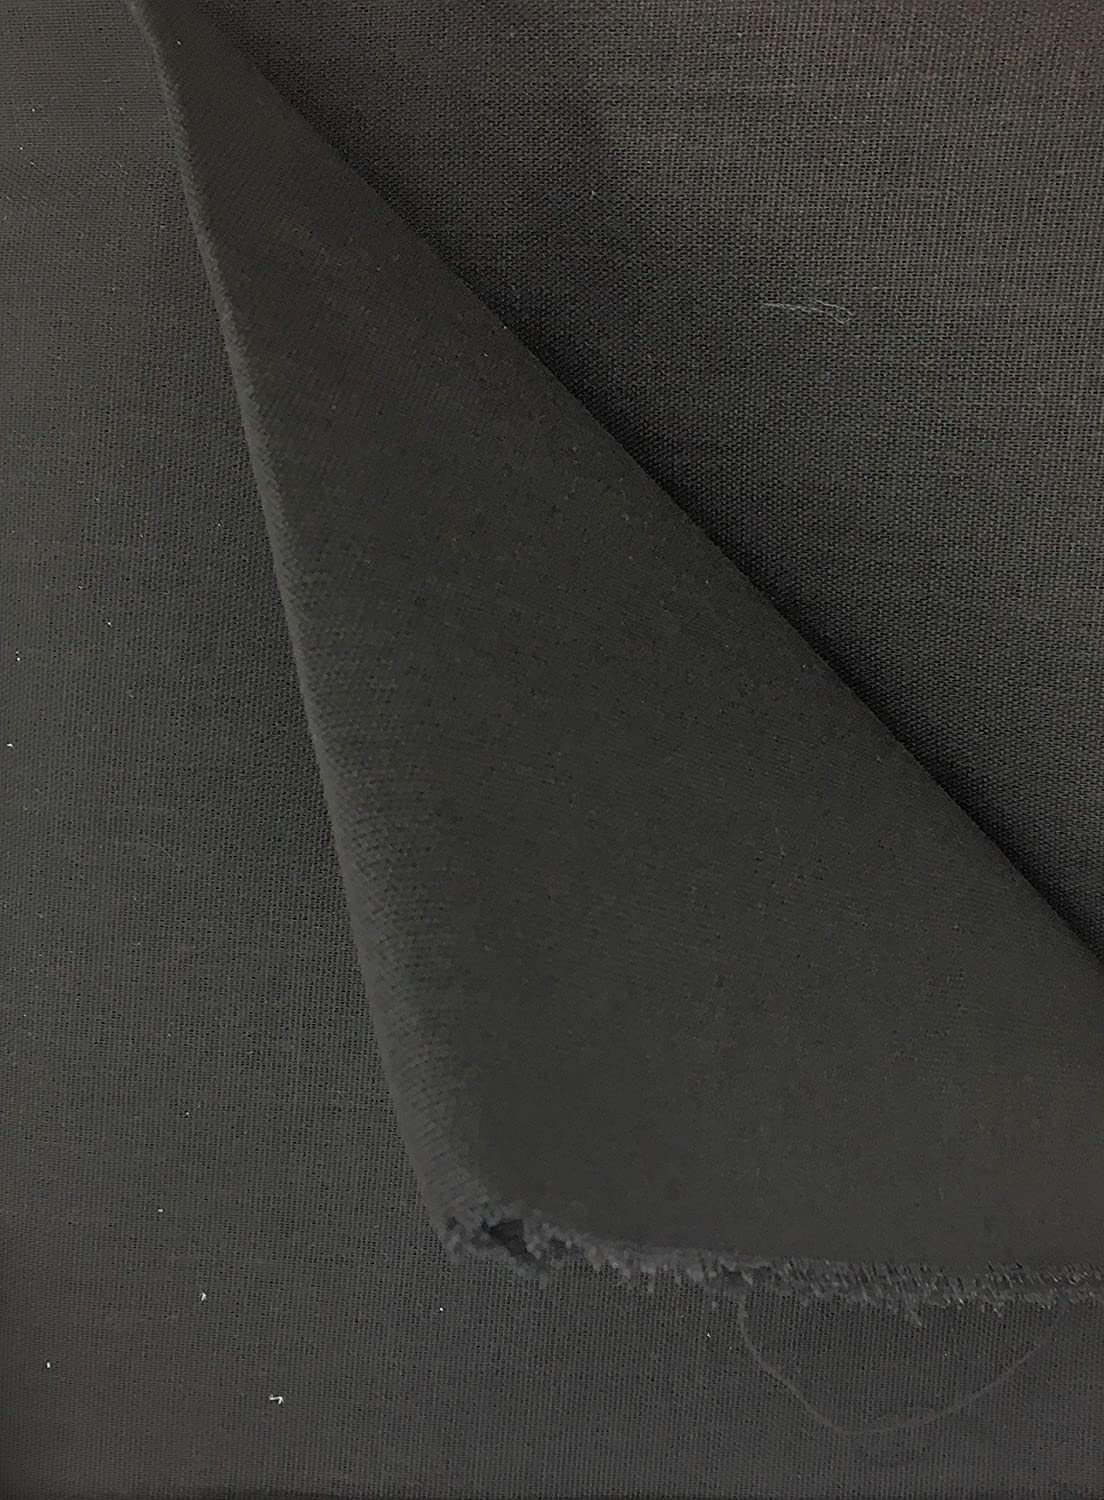 2 Yards x 58 Sew on Stiff Woven Black Buckram INTERFACING Medium Weight